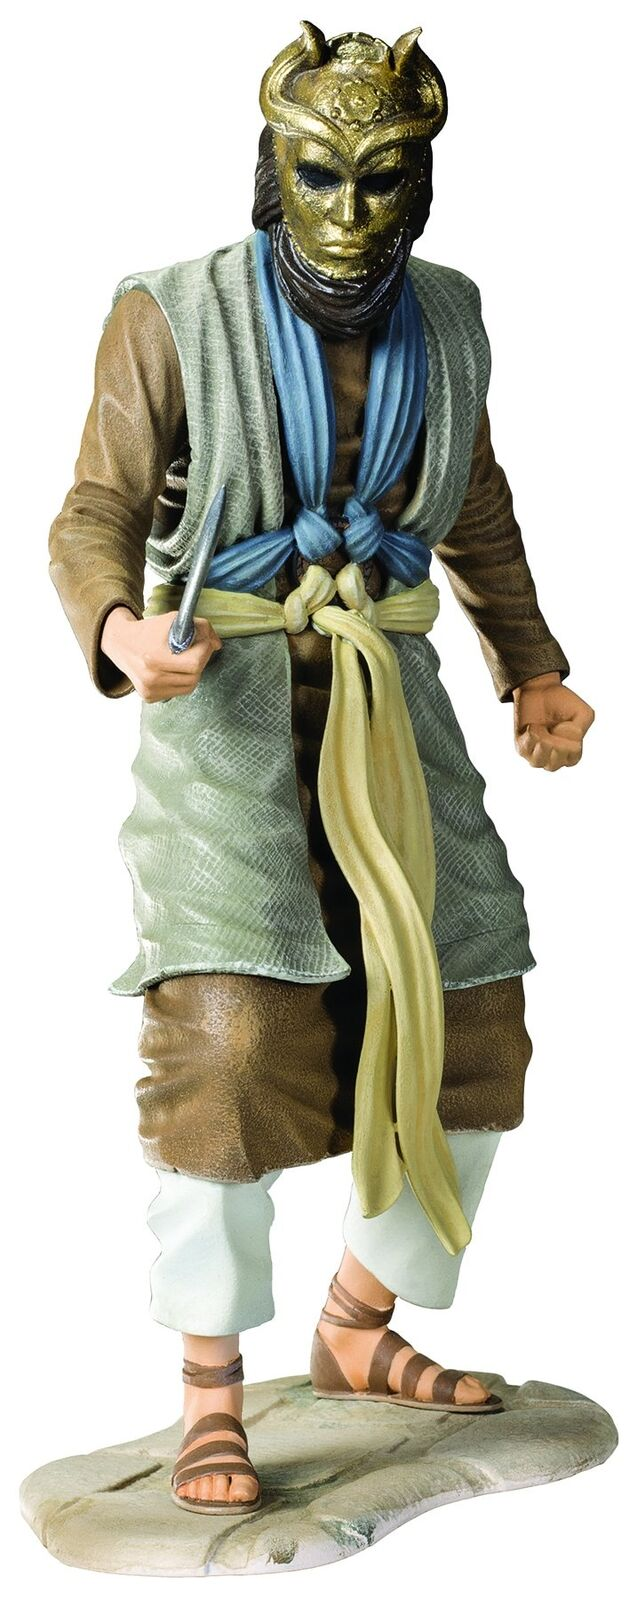 Game of Thrones 31-029 Son of Harpy Action Action Action Figure cb4f8c